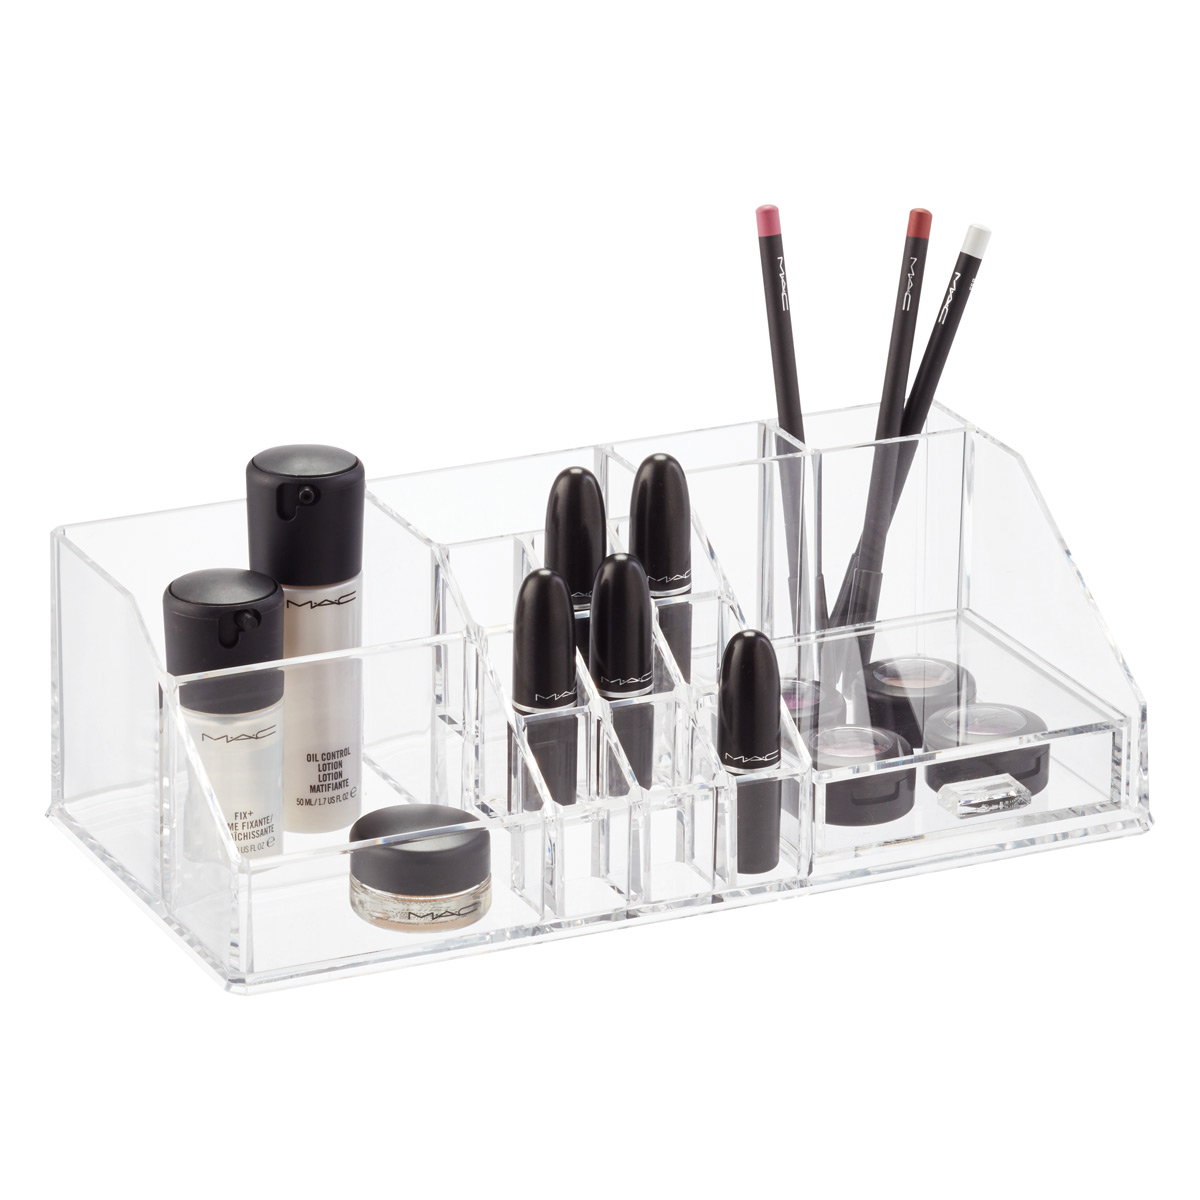 Acrylic Makeup Organizer With Drawer ...  sc 1 st  The Container Store & Acrylic Makeup Organizer With Drawer | The Container Store